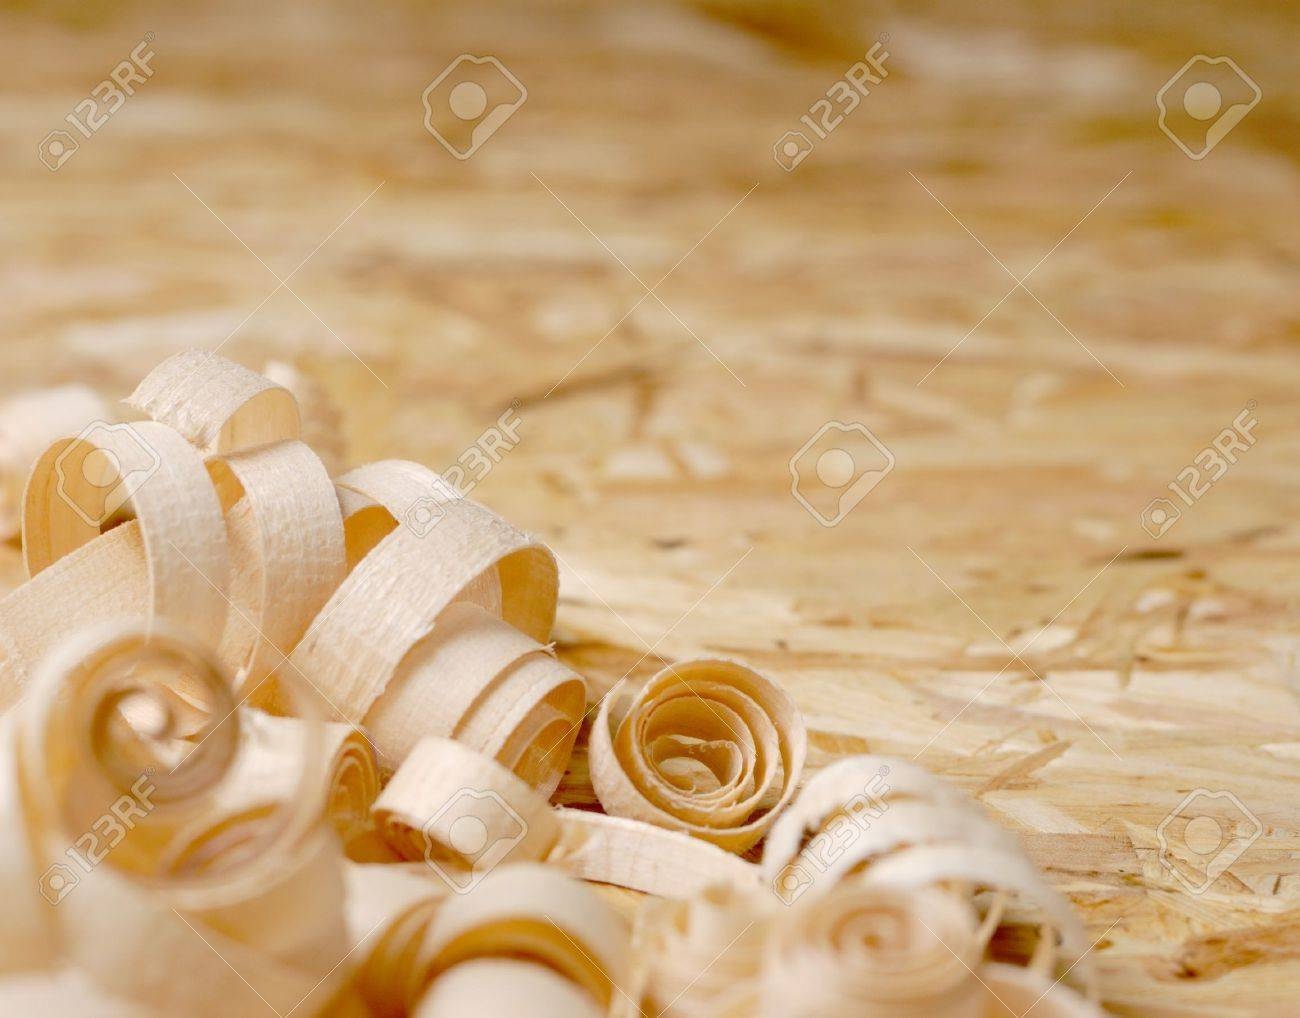 Sawdust on the plywood background Stock Photo - 9290784